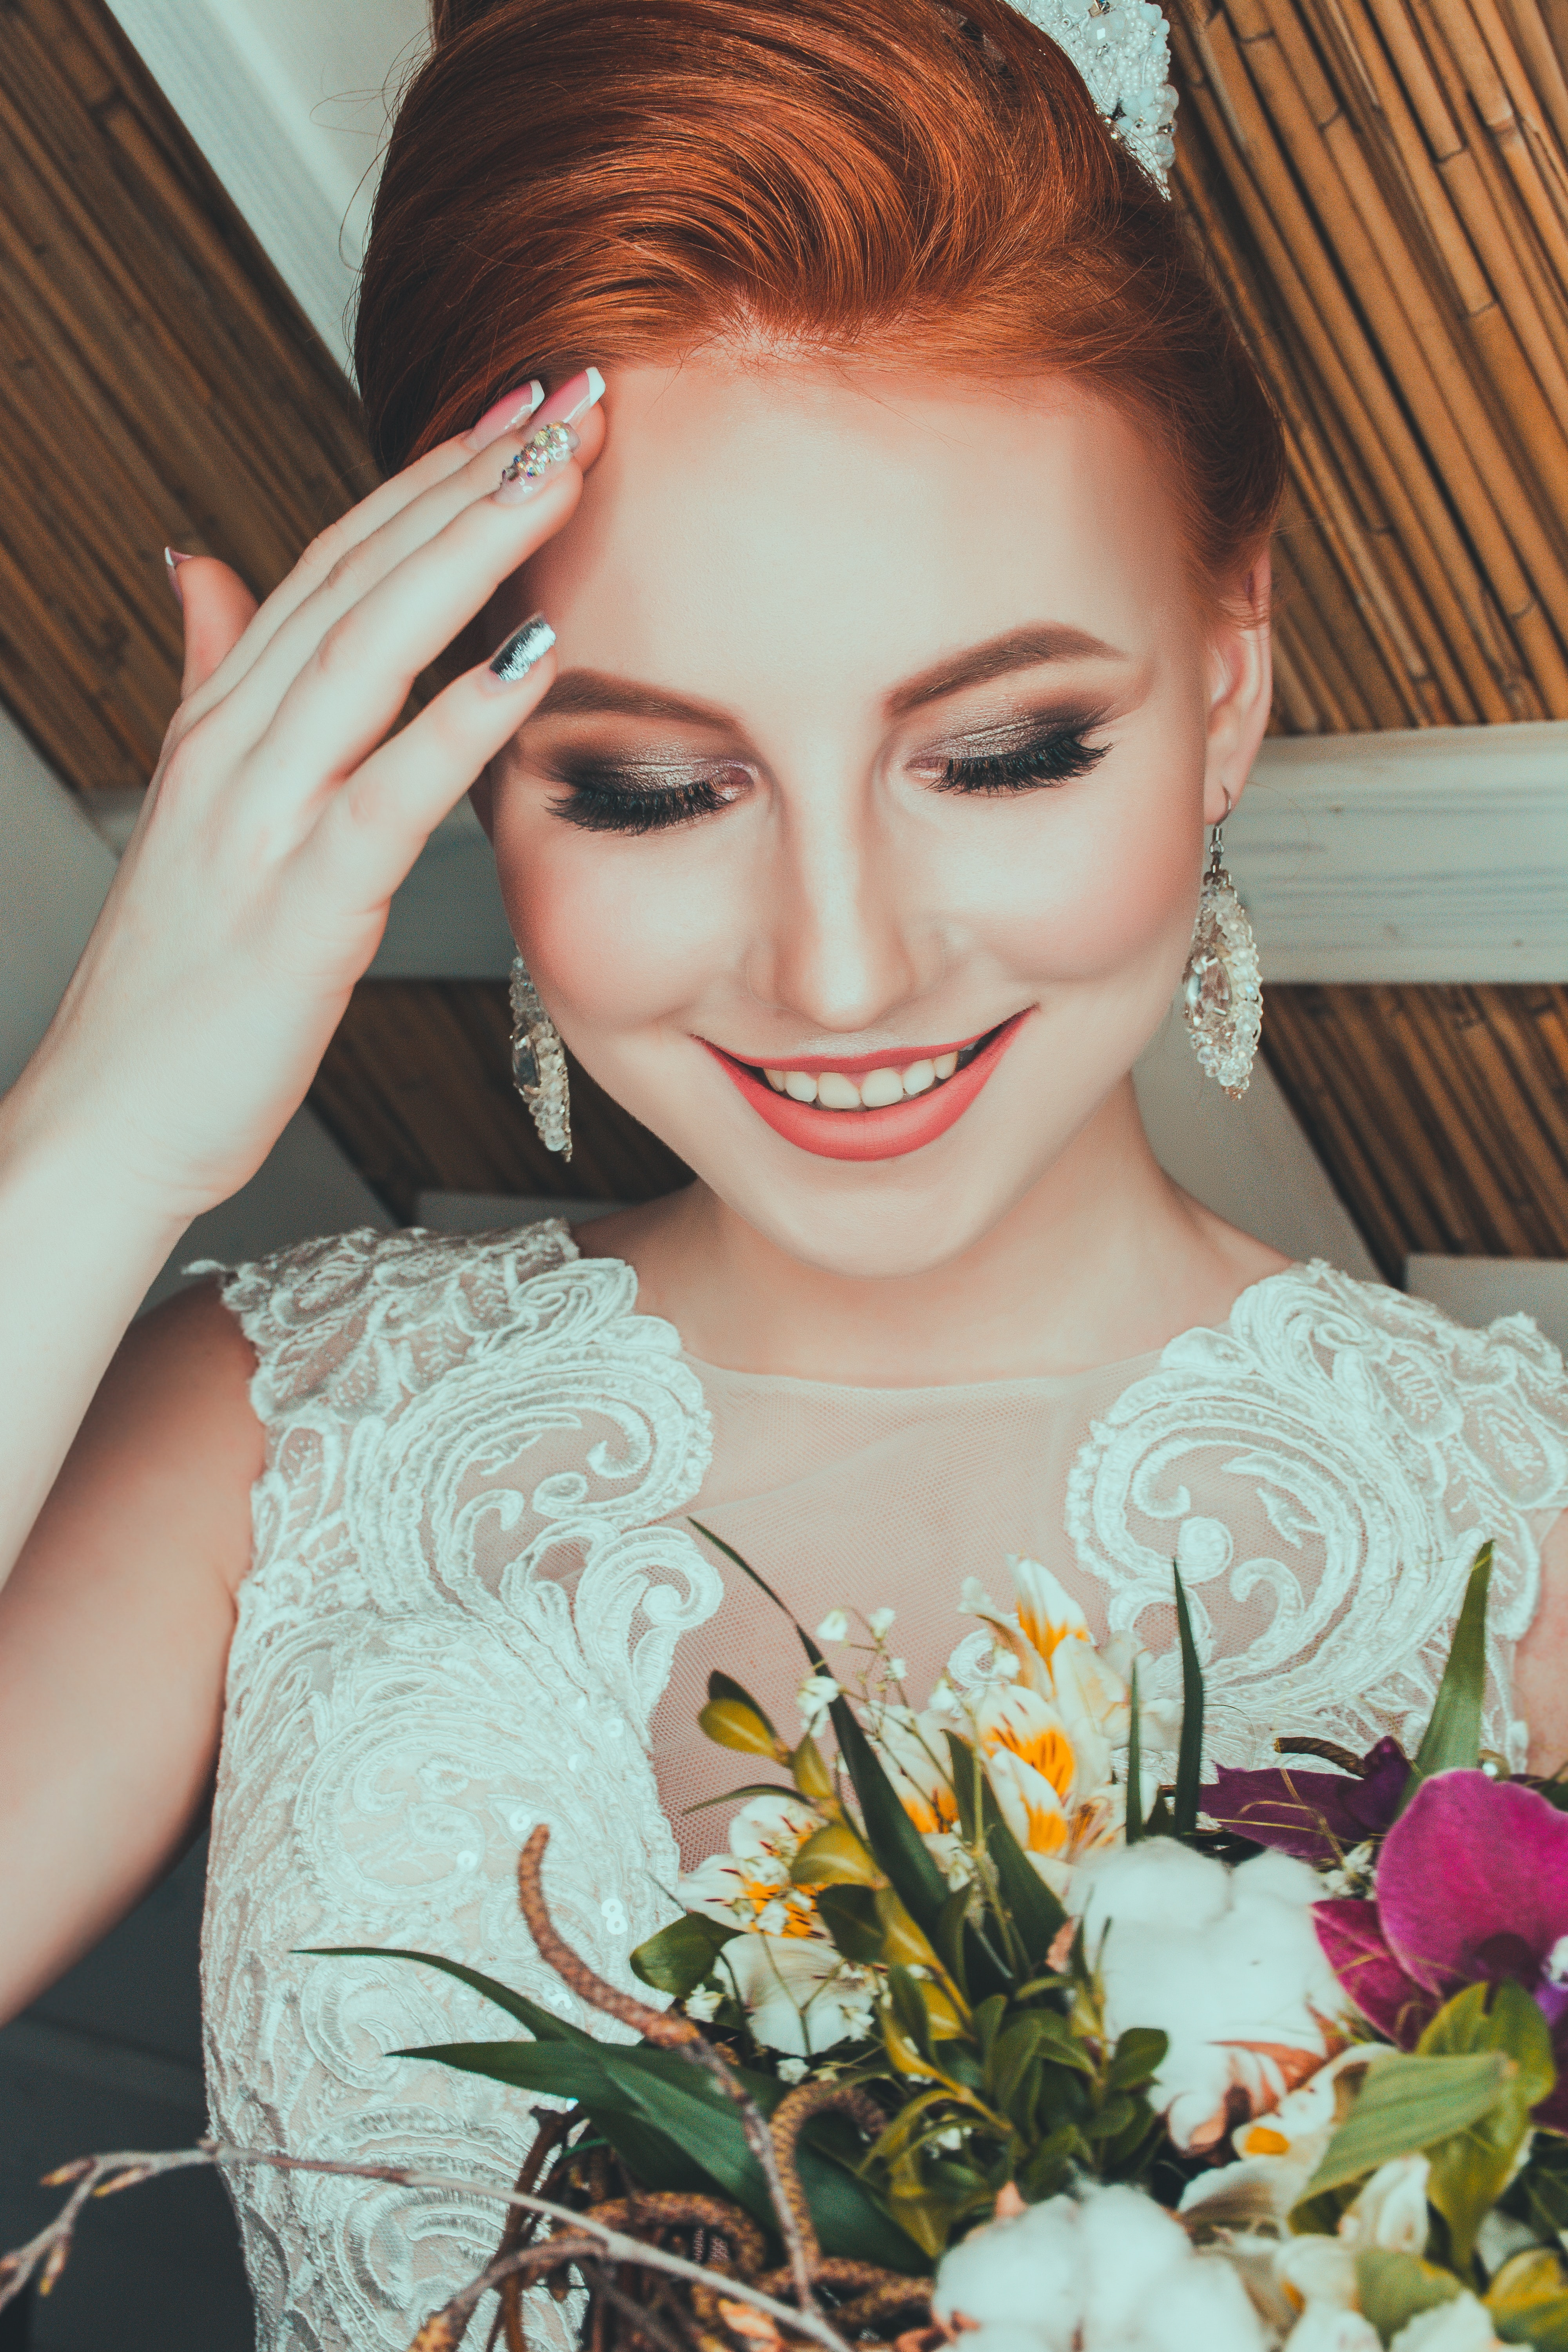 woman wearing bridal gown touching her forehead